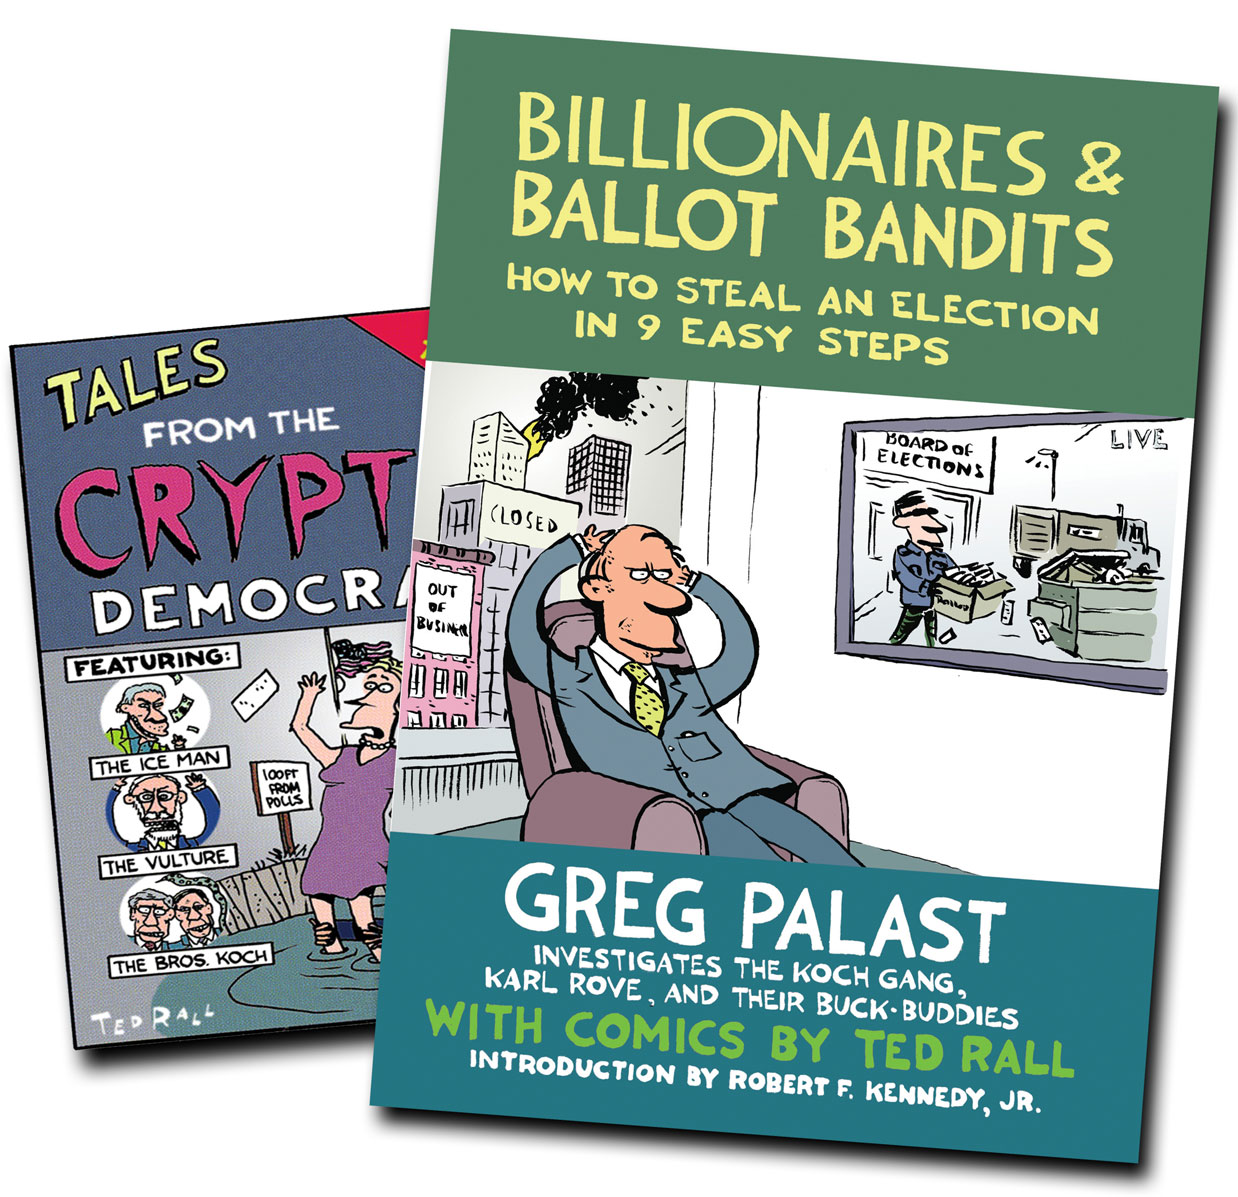 Billionaires and Ballot Bandits